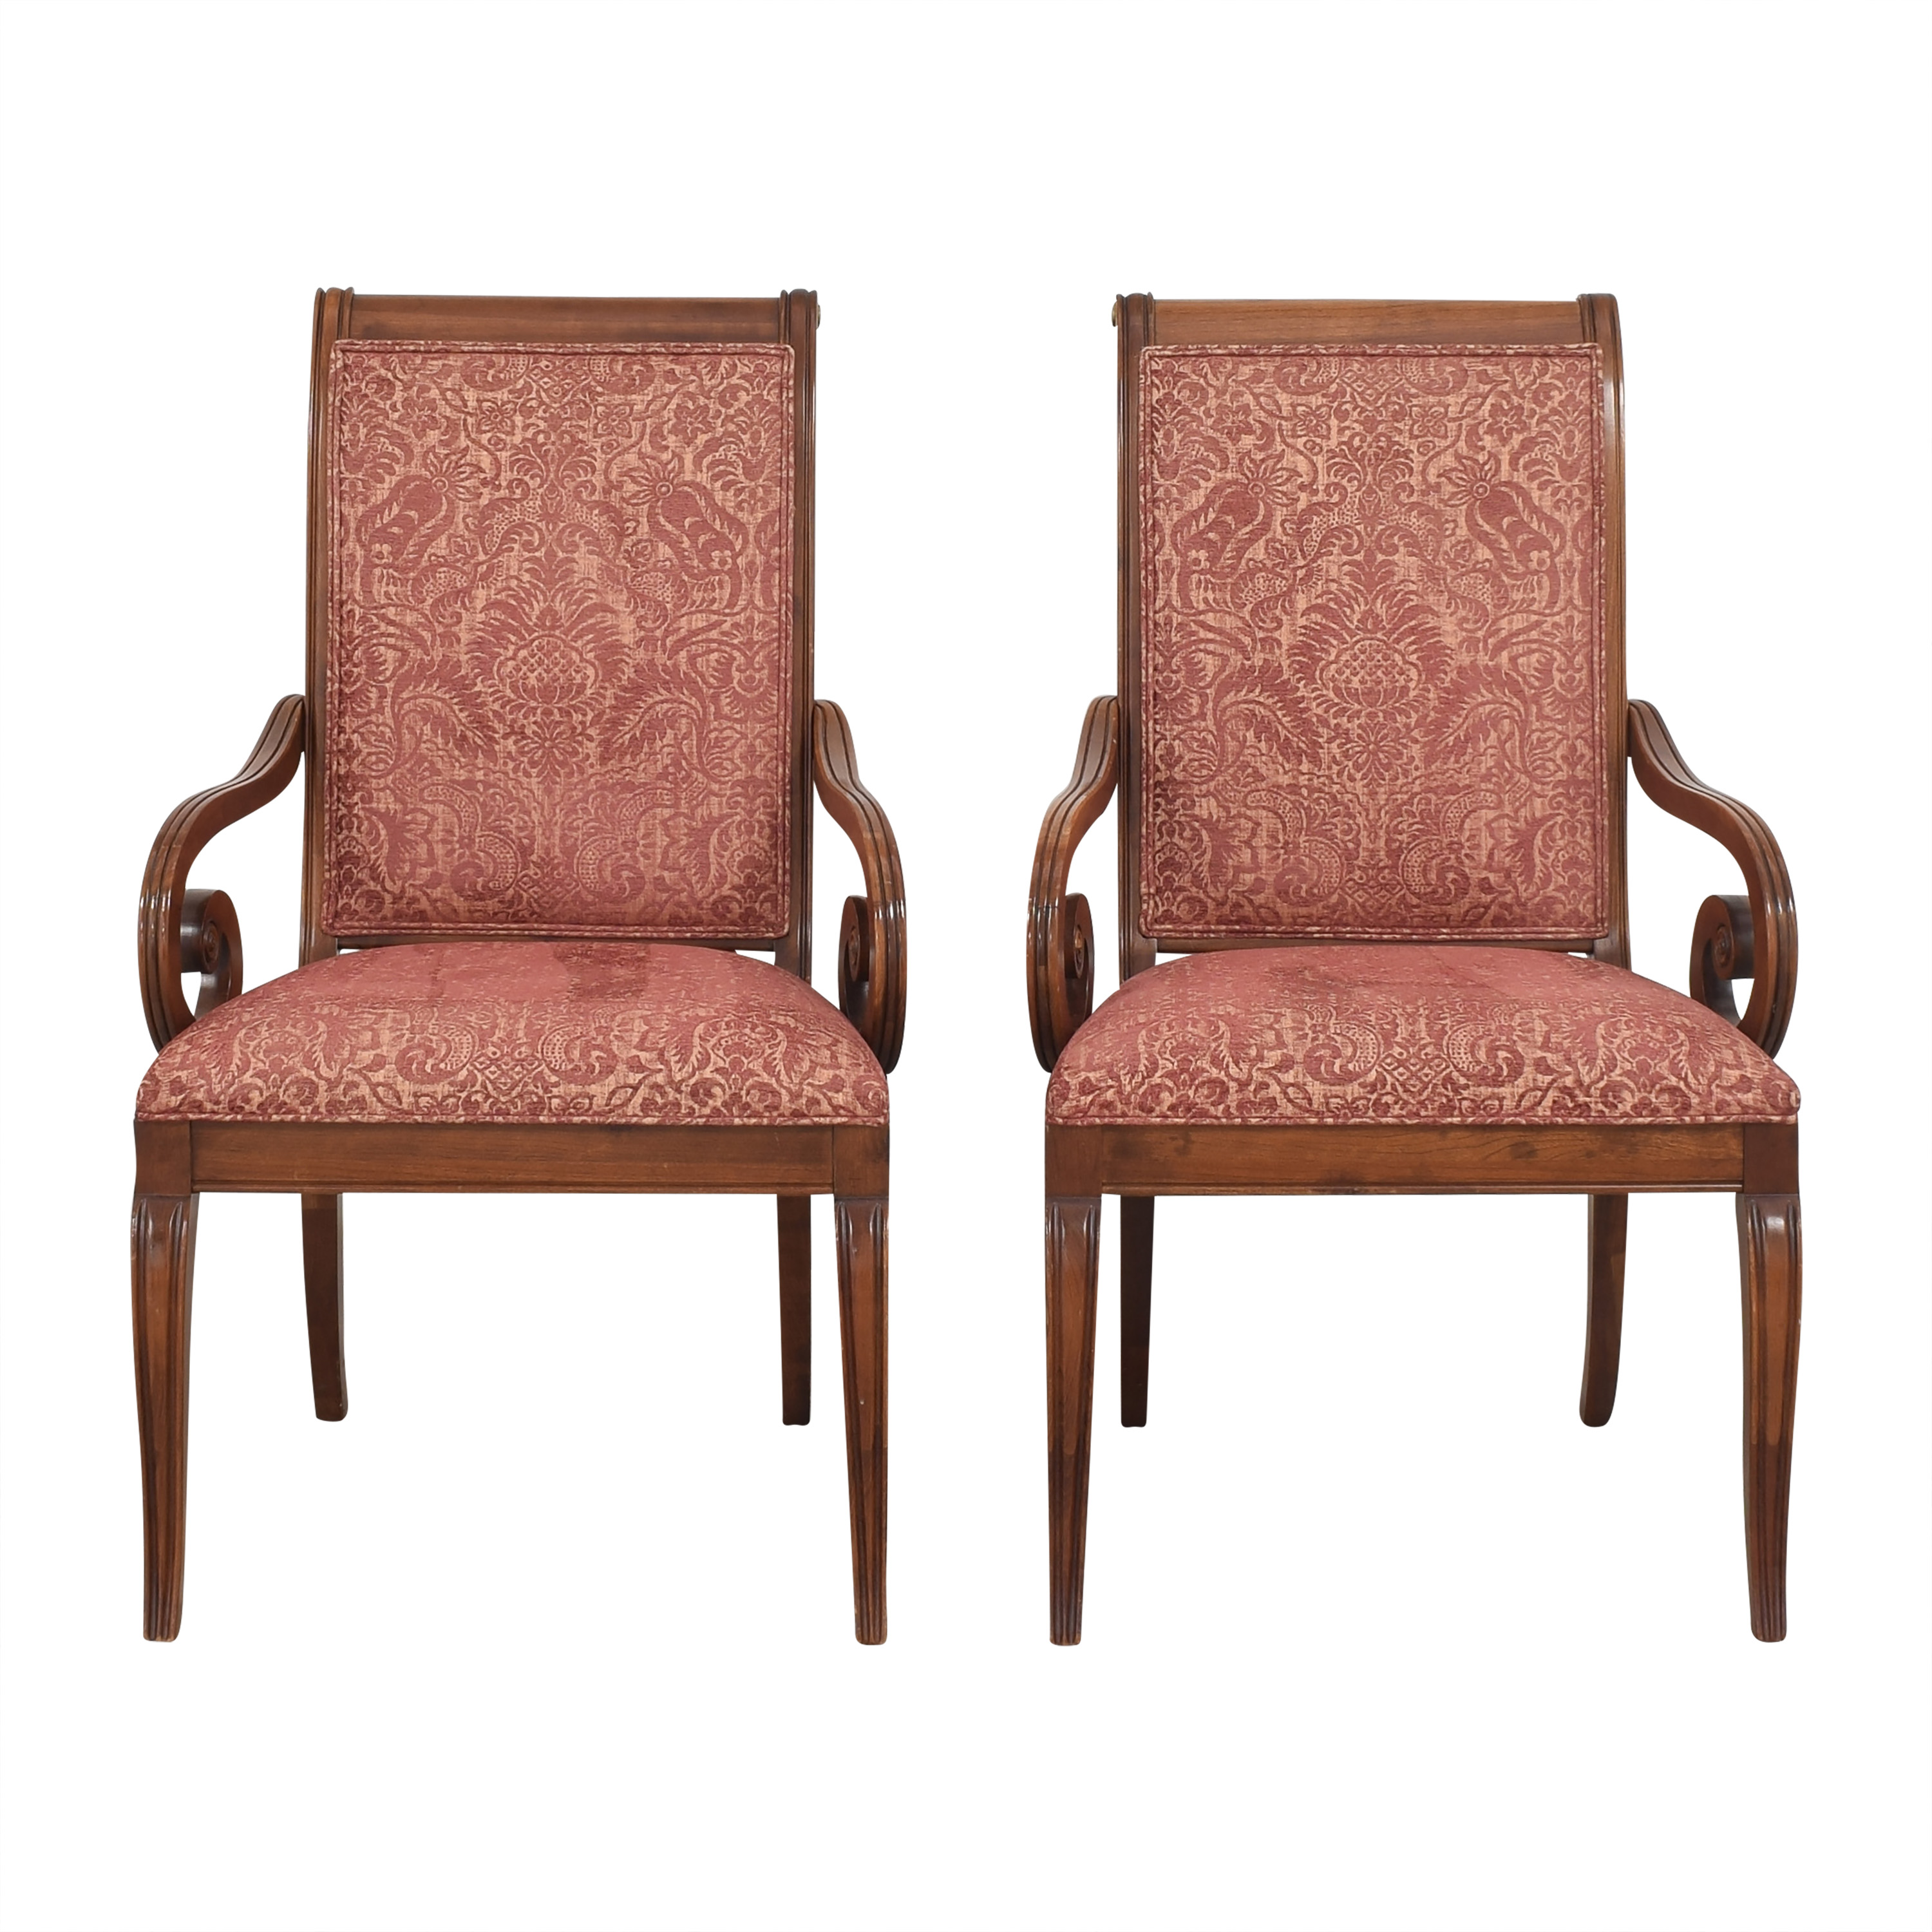 shop Ethan Allen Upholstered Dining Arm Chairs Ethan Allen Dining Chairs